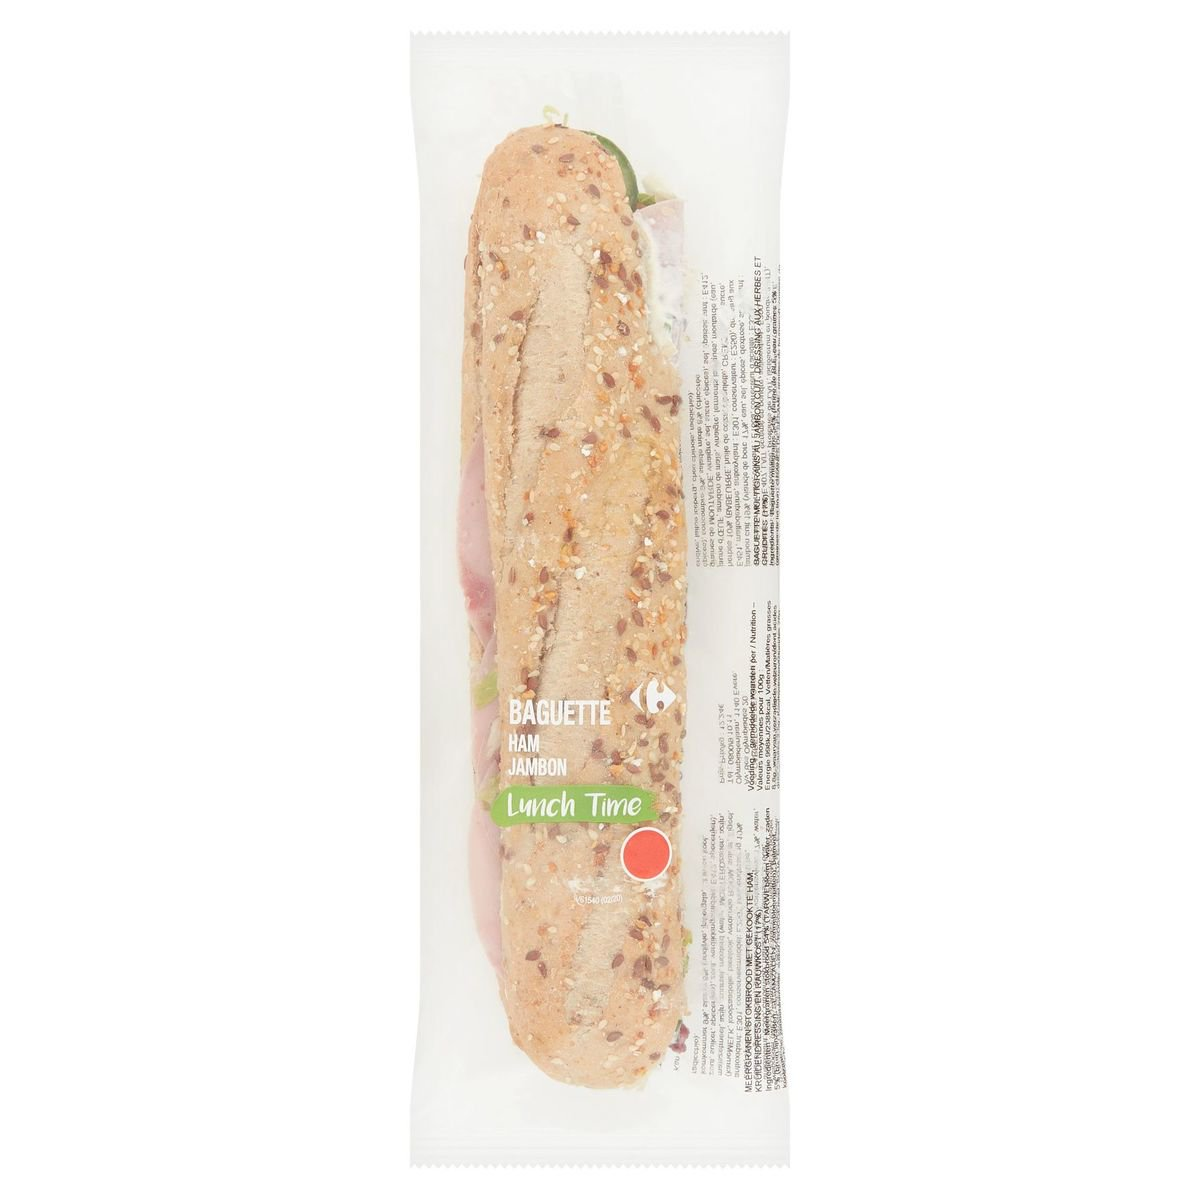 Carrefour Lunch Time Baguette Jambon 245 g